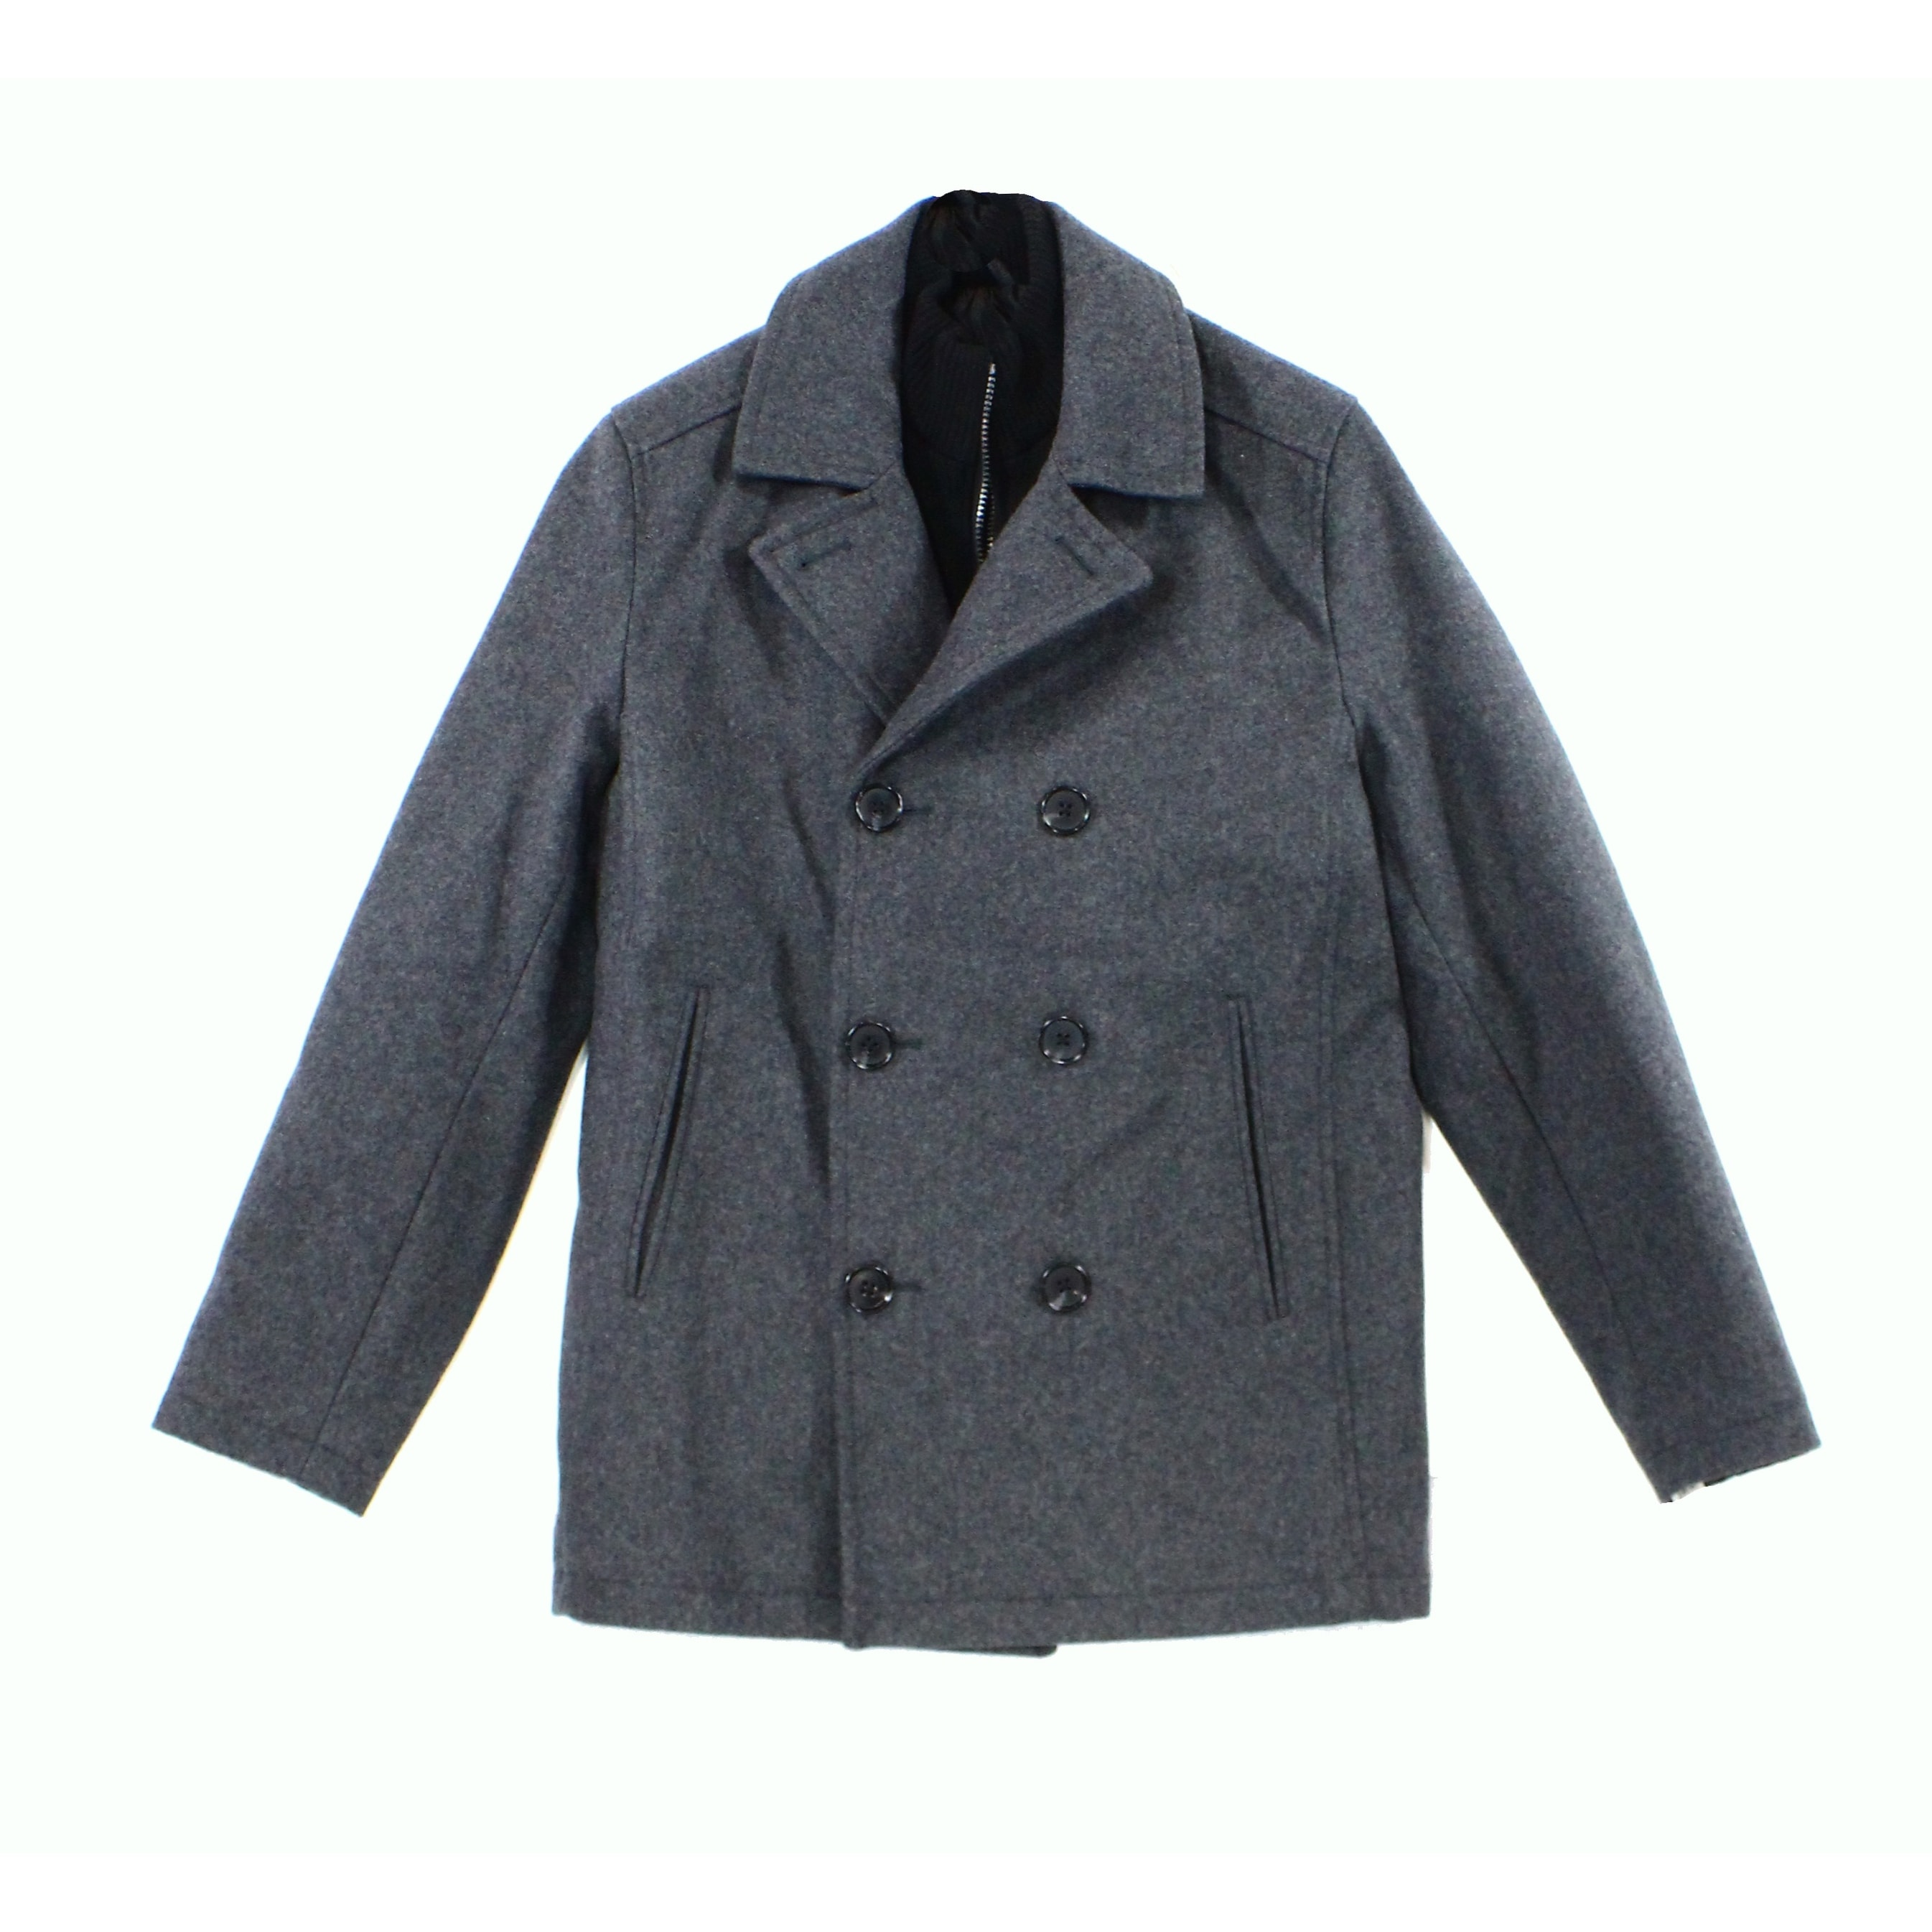 bd8d712e05 Shop INC NEW Gray Mens Size Small S Double-Breasted Notched Peacoat Wool - Free  Shipping On Orders Over $45 - Overstock - 18381126